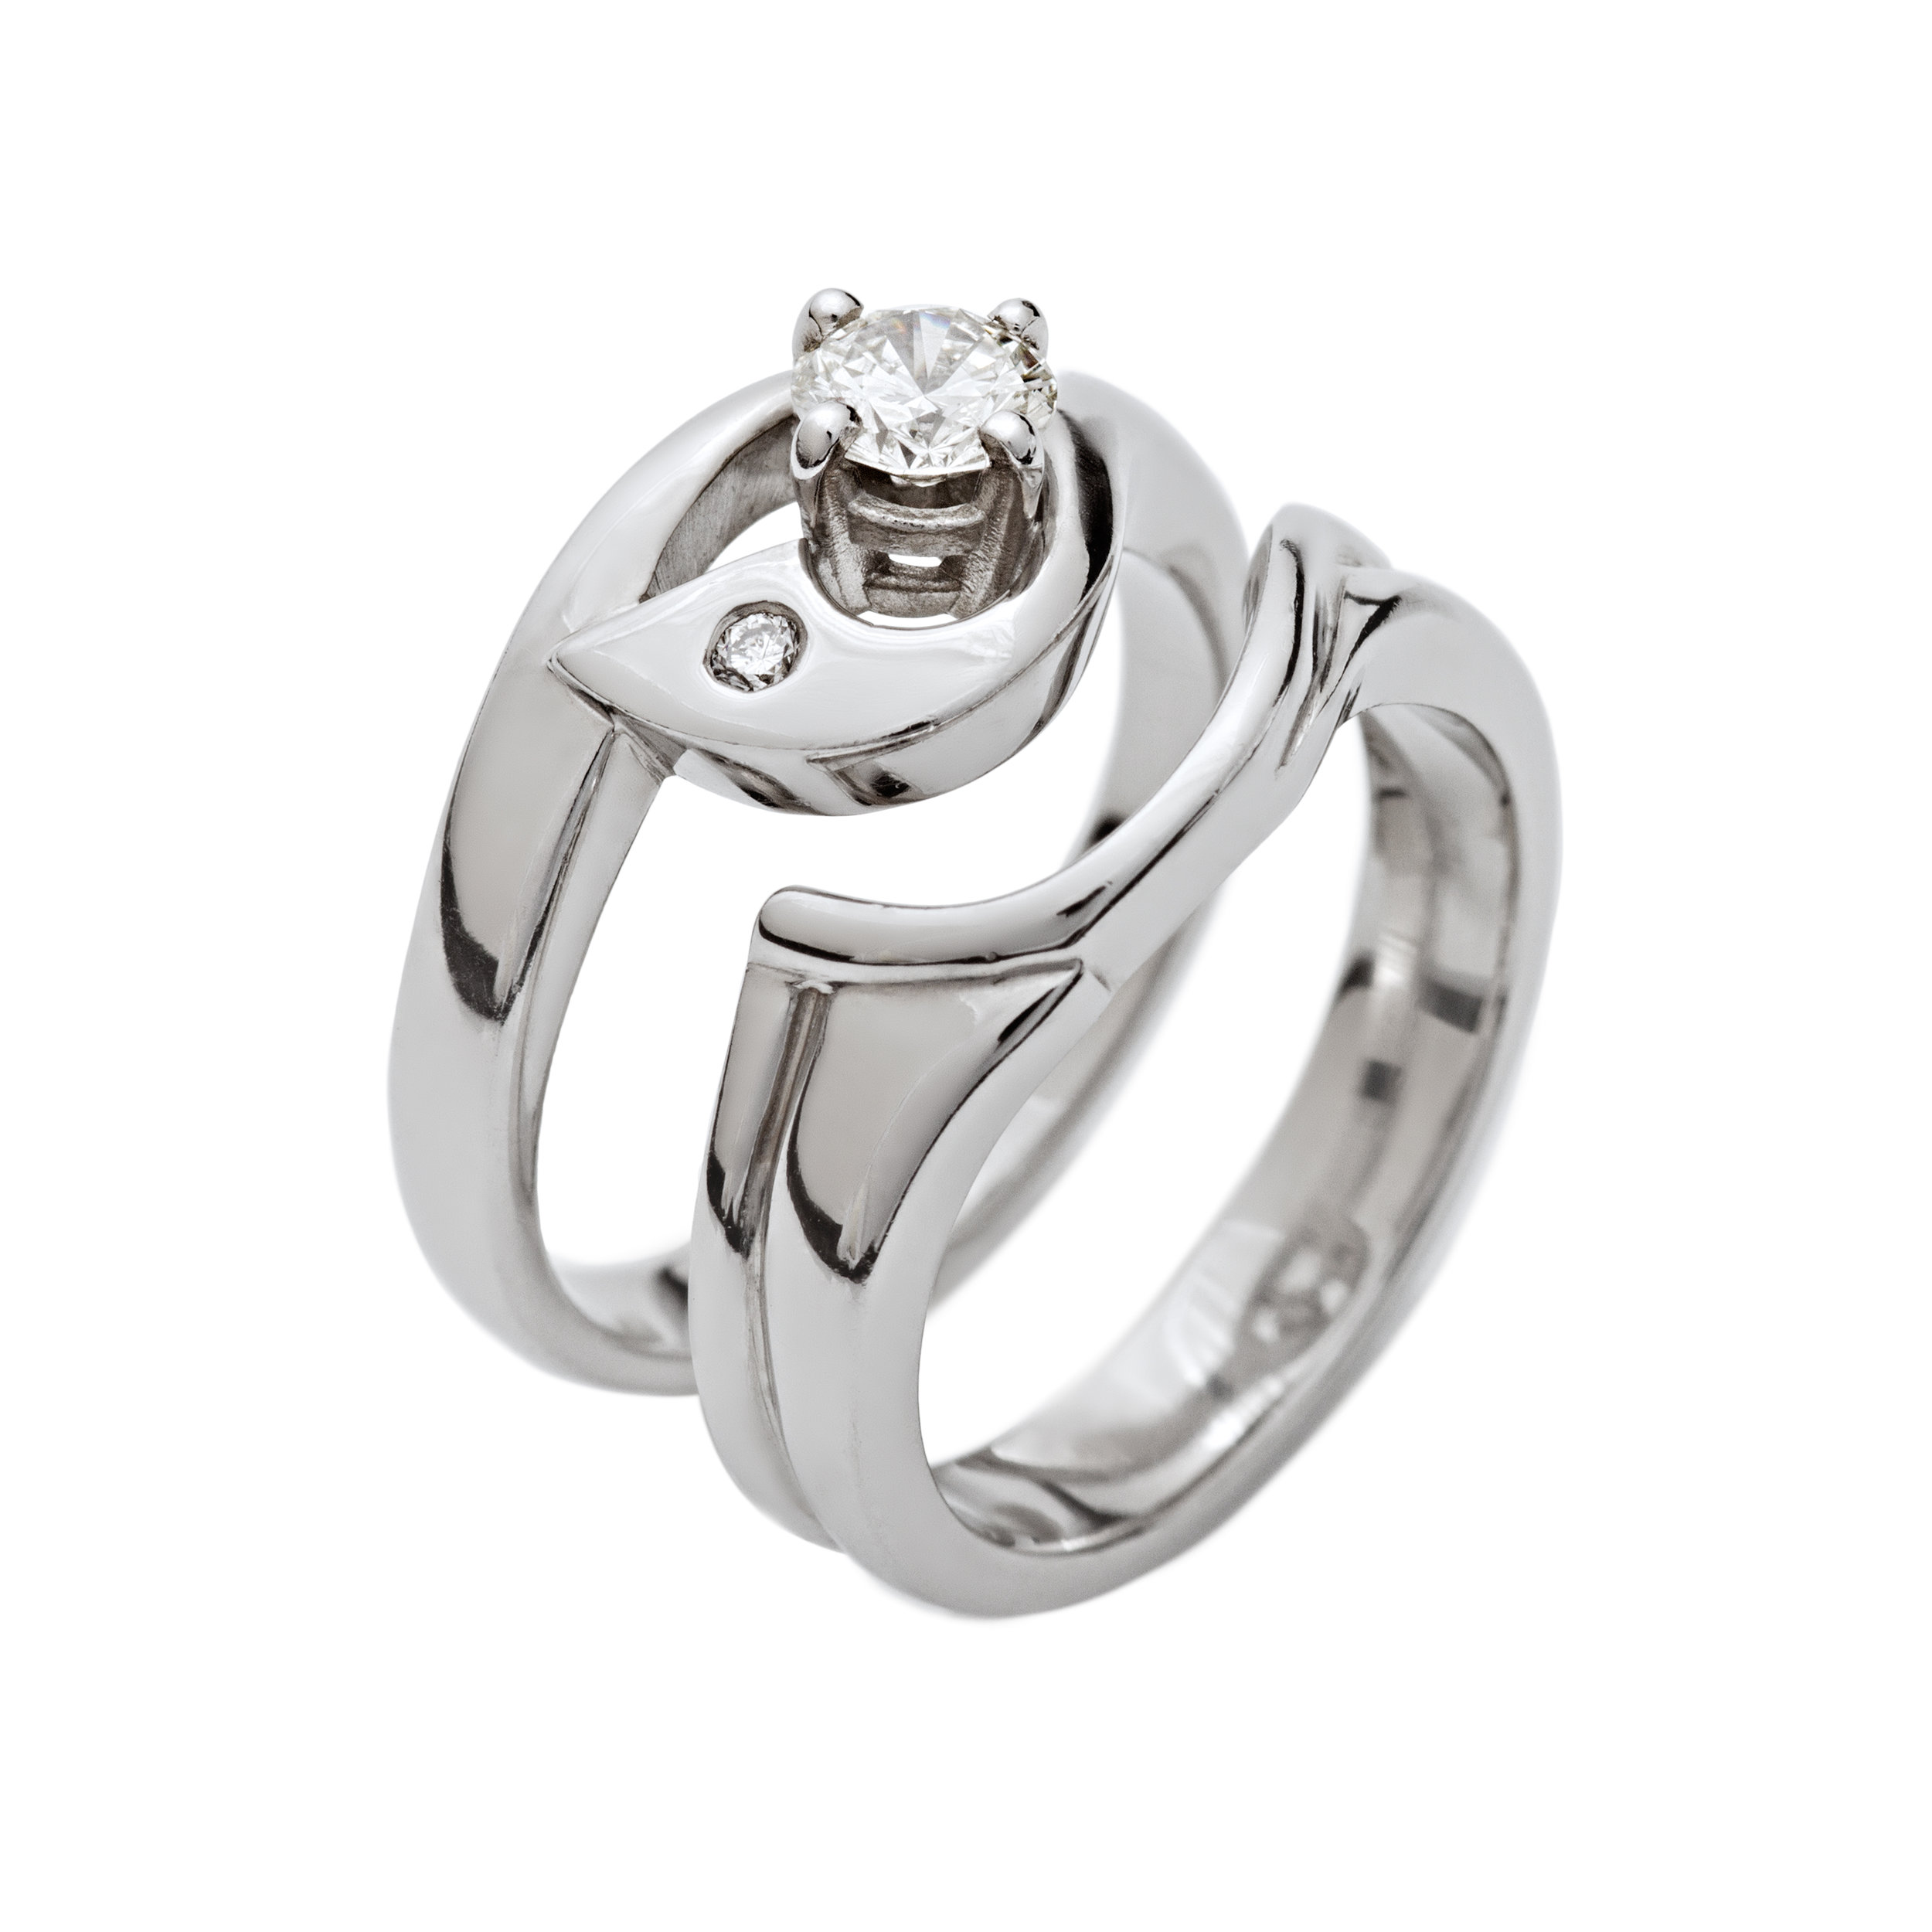 Bespoke 18ct white gold and diamond engagement and wedding ring commission